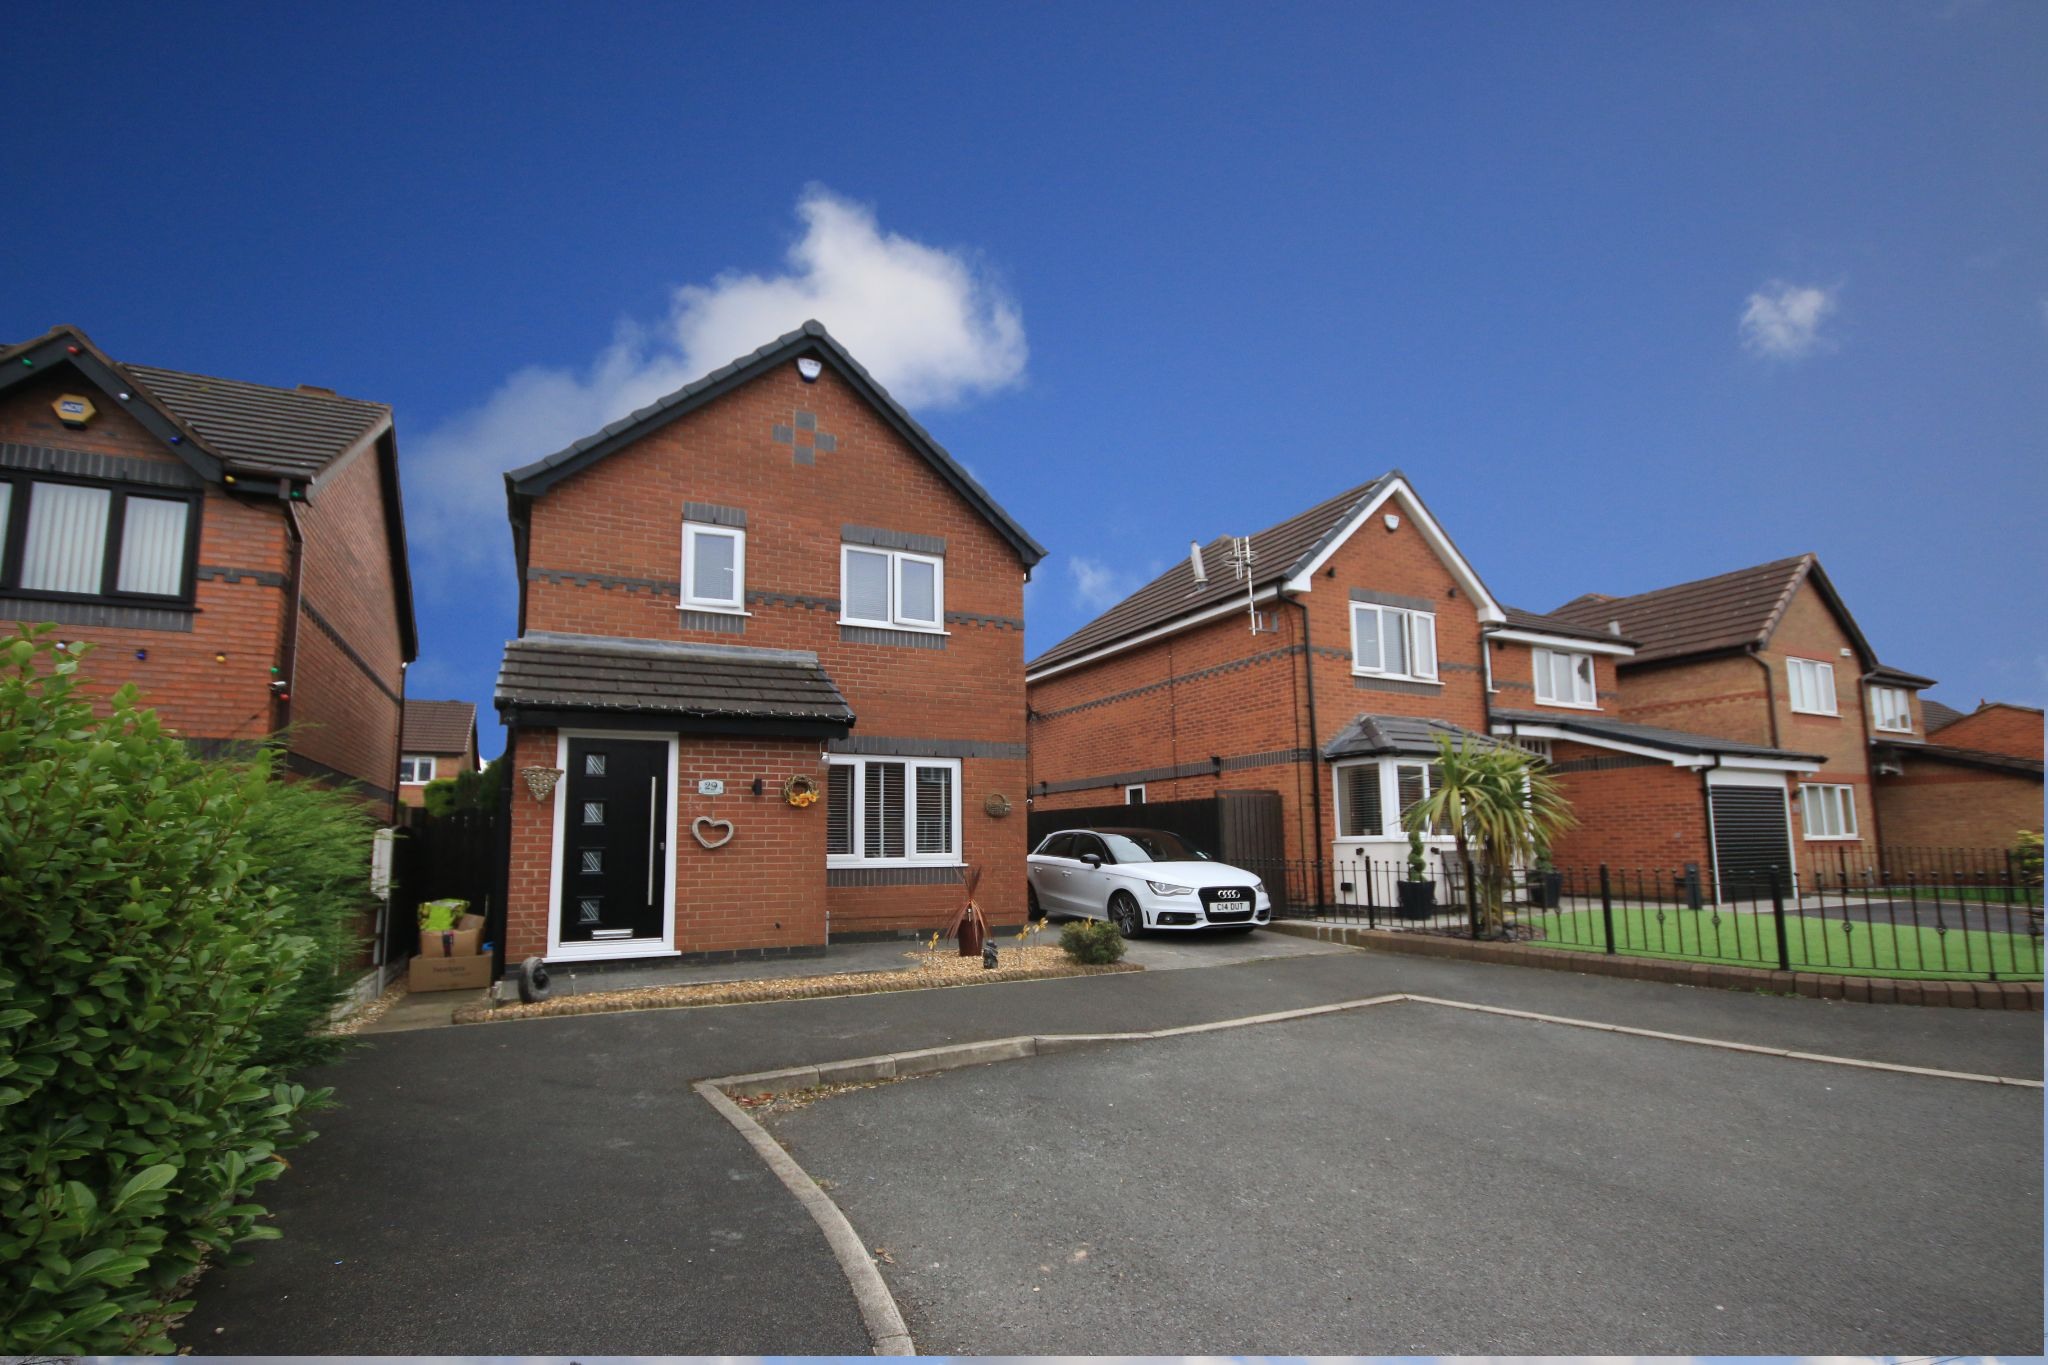 3 Bedroom Detached House To Rent - Photograph 1